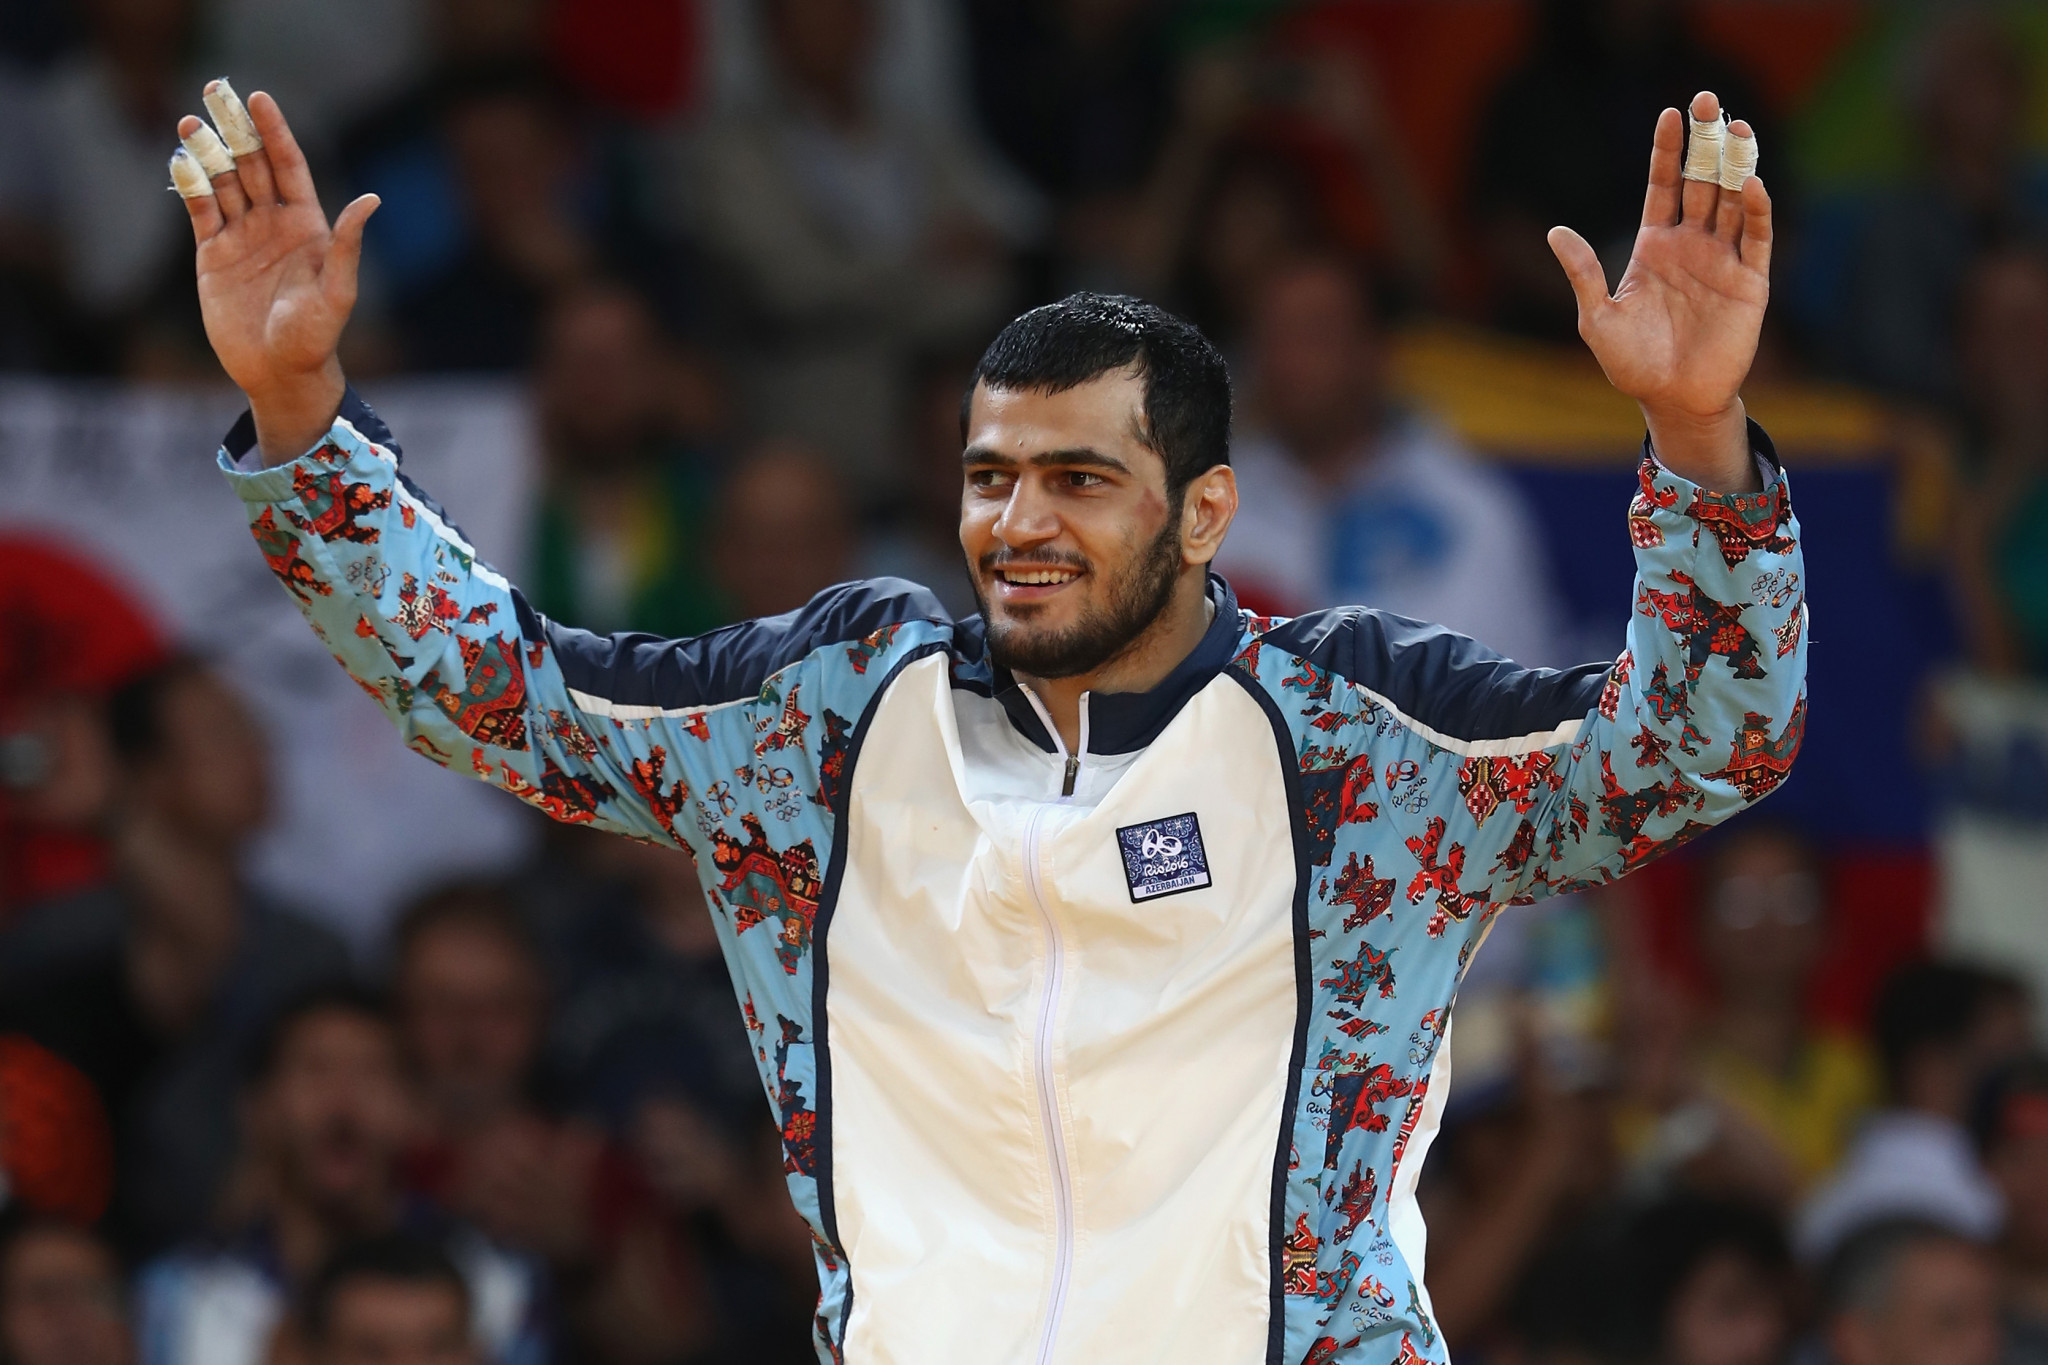 Elmar Gasimov will also be competing in the Croatian capital ©Getty Images